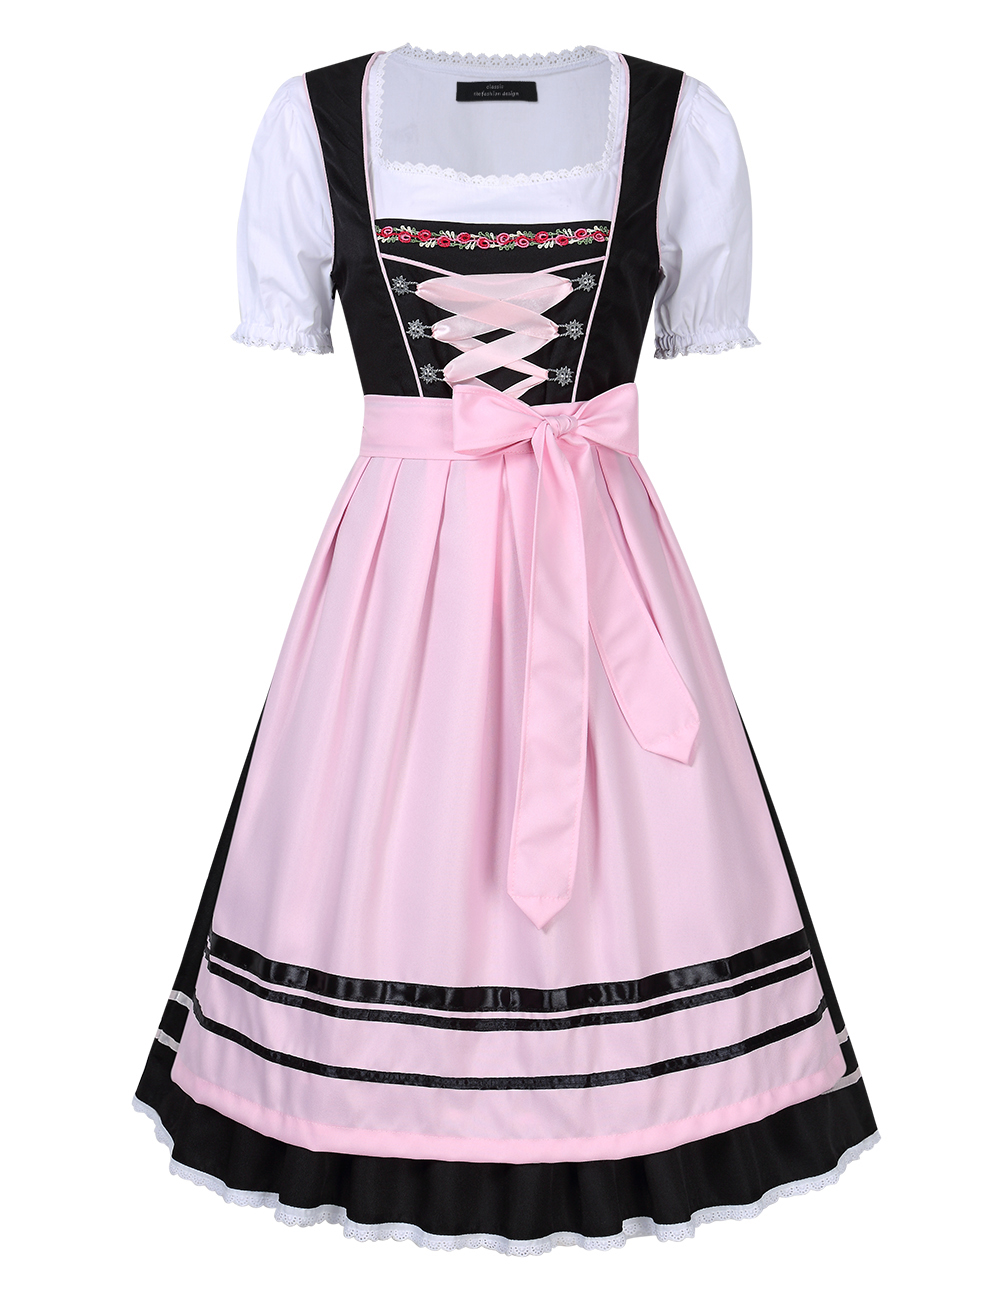 Women's Oktoberfest Holiday Three Piece Dress Suit Pleated Lace Trim Stitching Short Sleeve Dresses